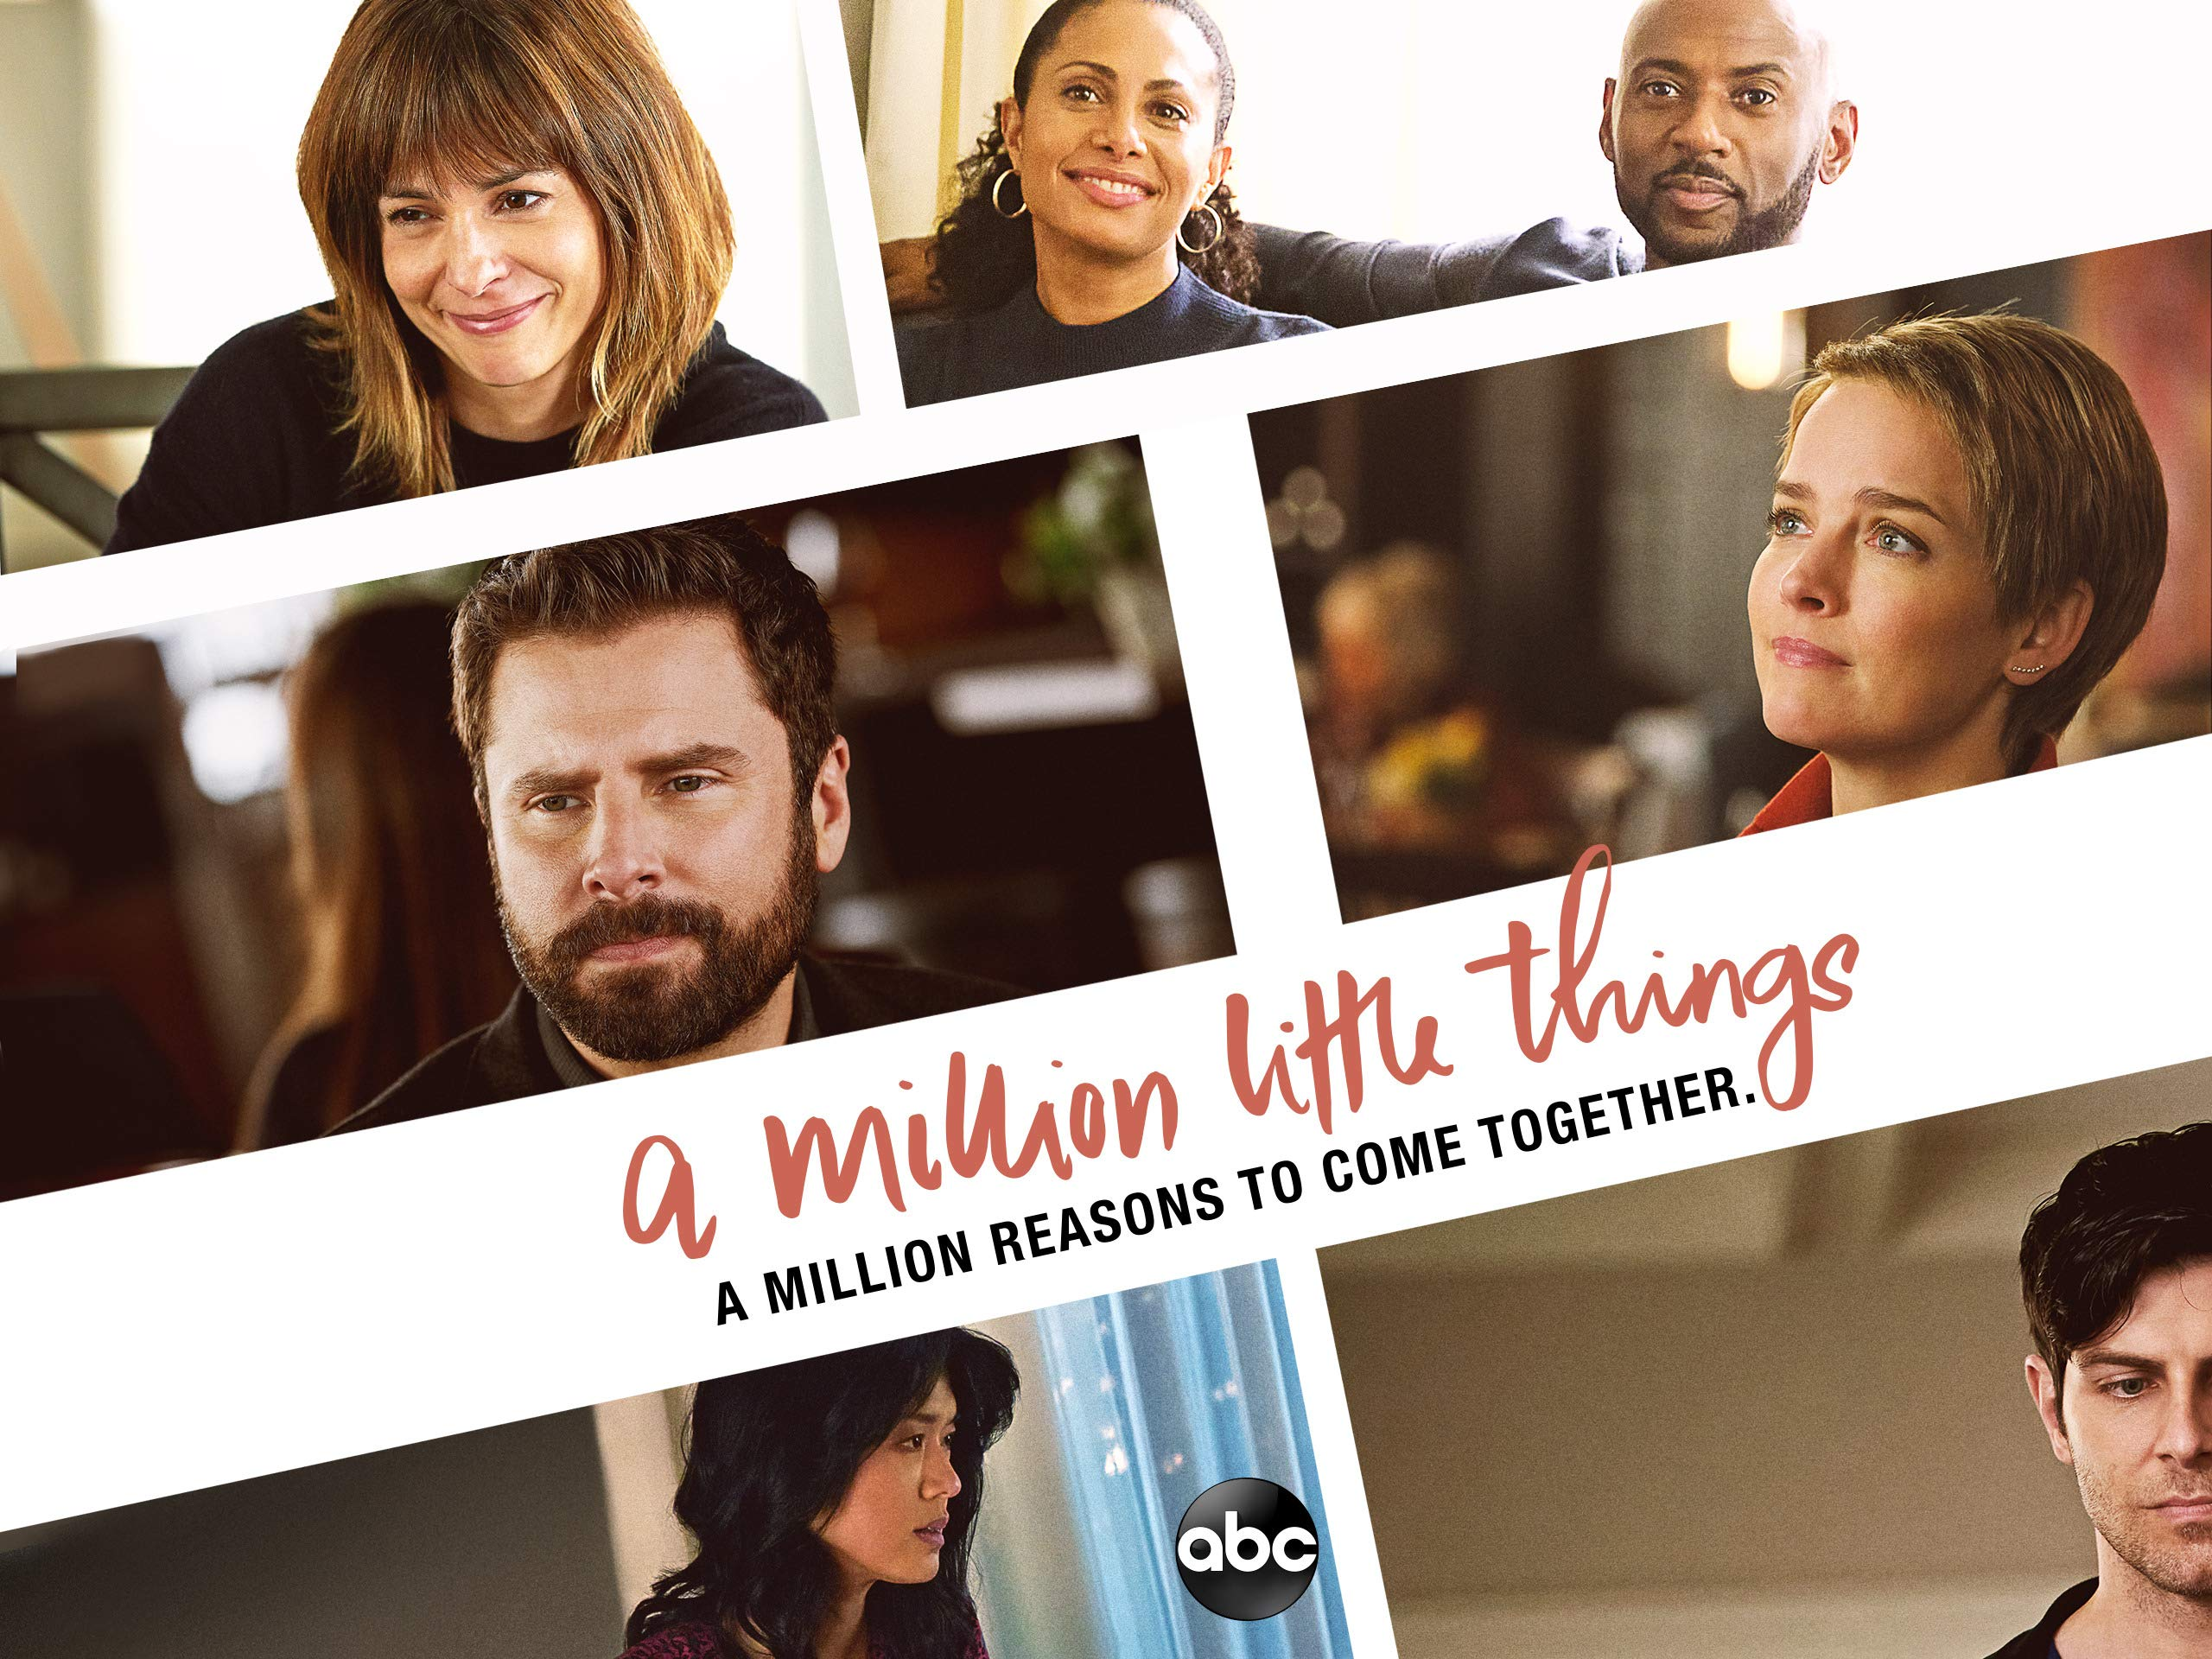 A Million Little Things Season 3 Episode 5: Latest Updates!